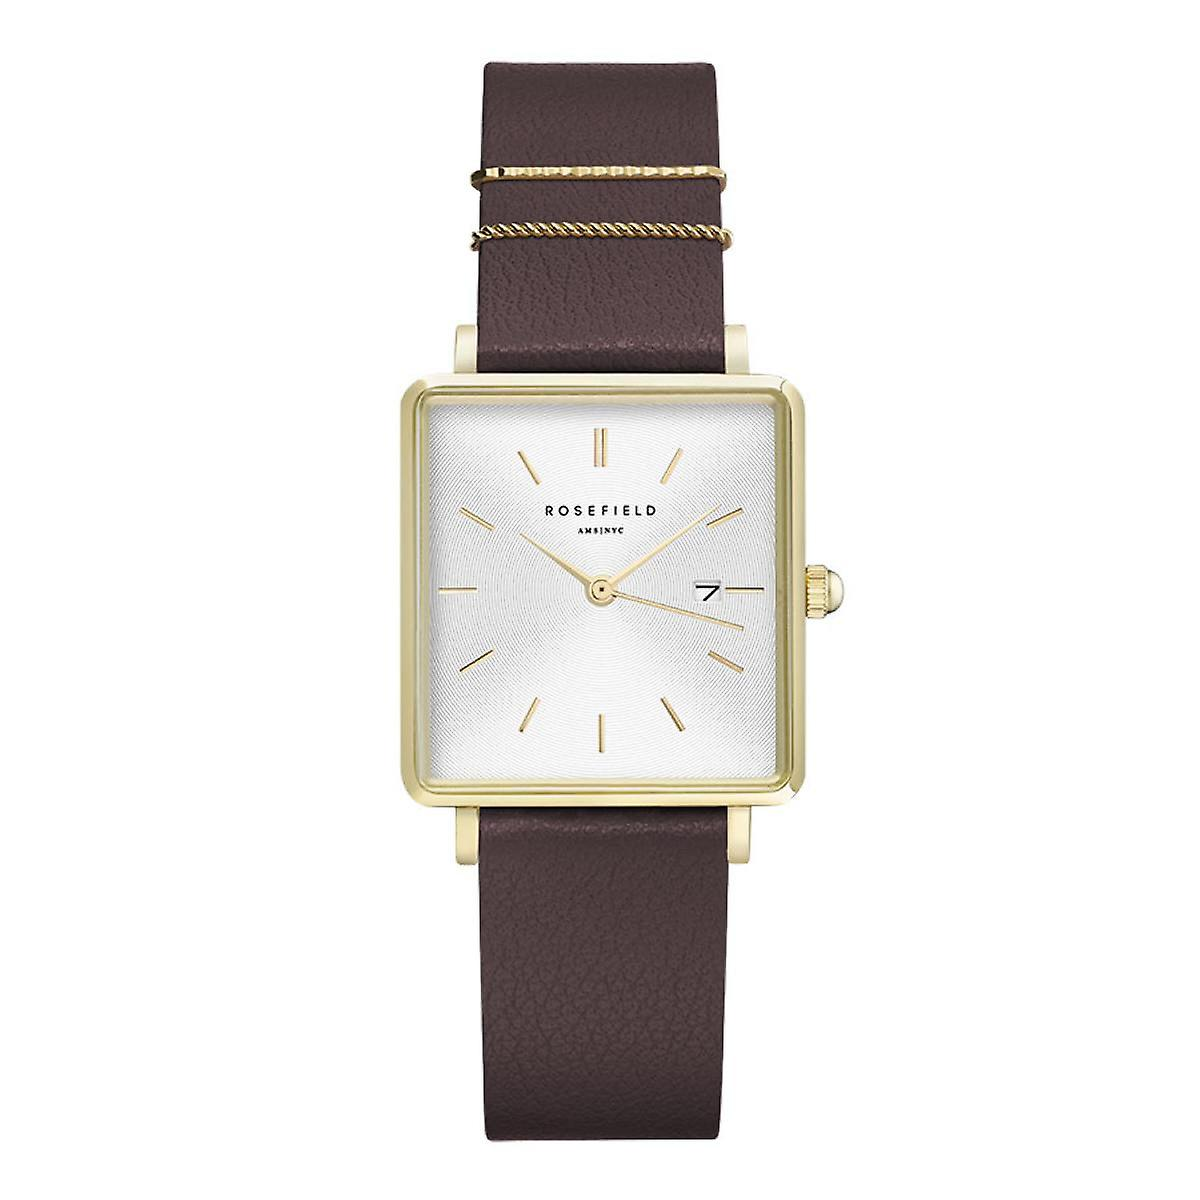 Rosefield QSAG-Q030 watch - Bo tier m tal dor shiny white dial with red leather strap dator or women's rings